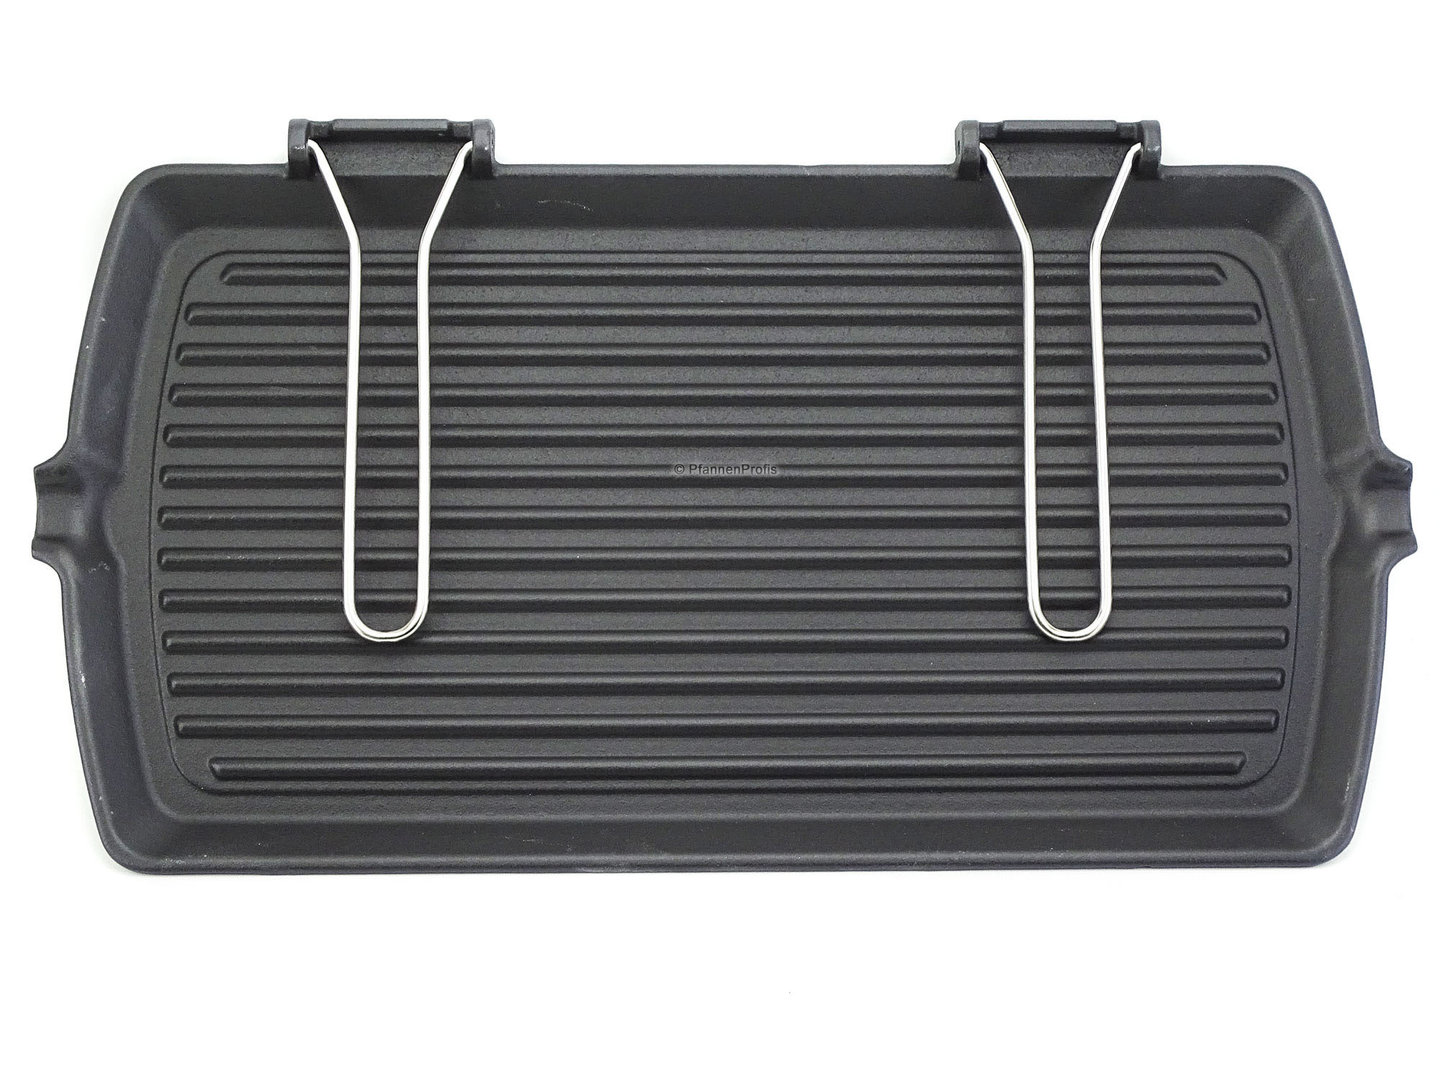 RISOLI cast iron grillpan 50 cm with foldaway handles